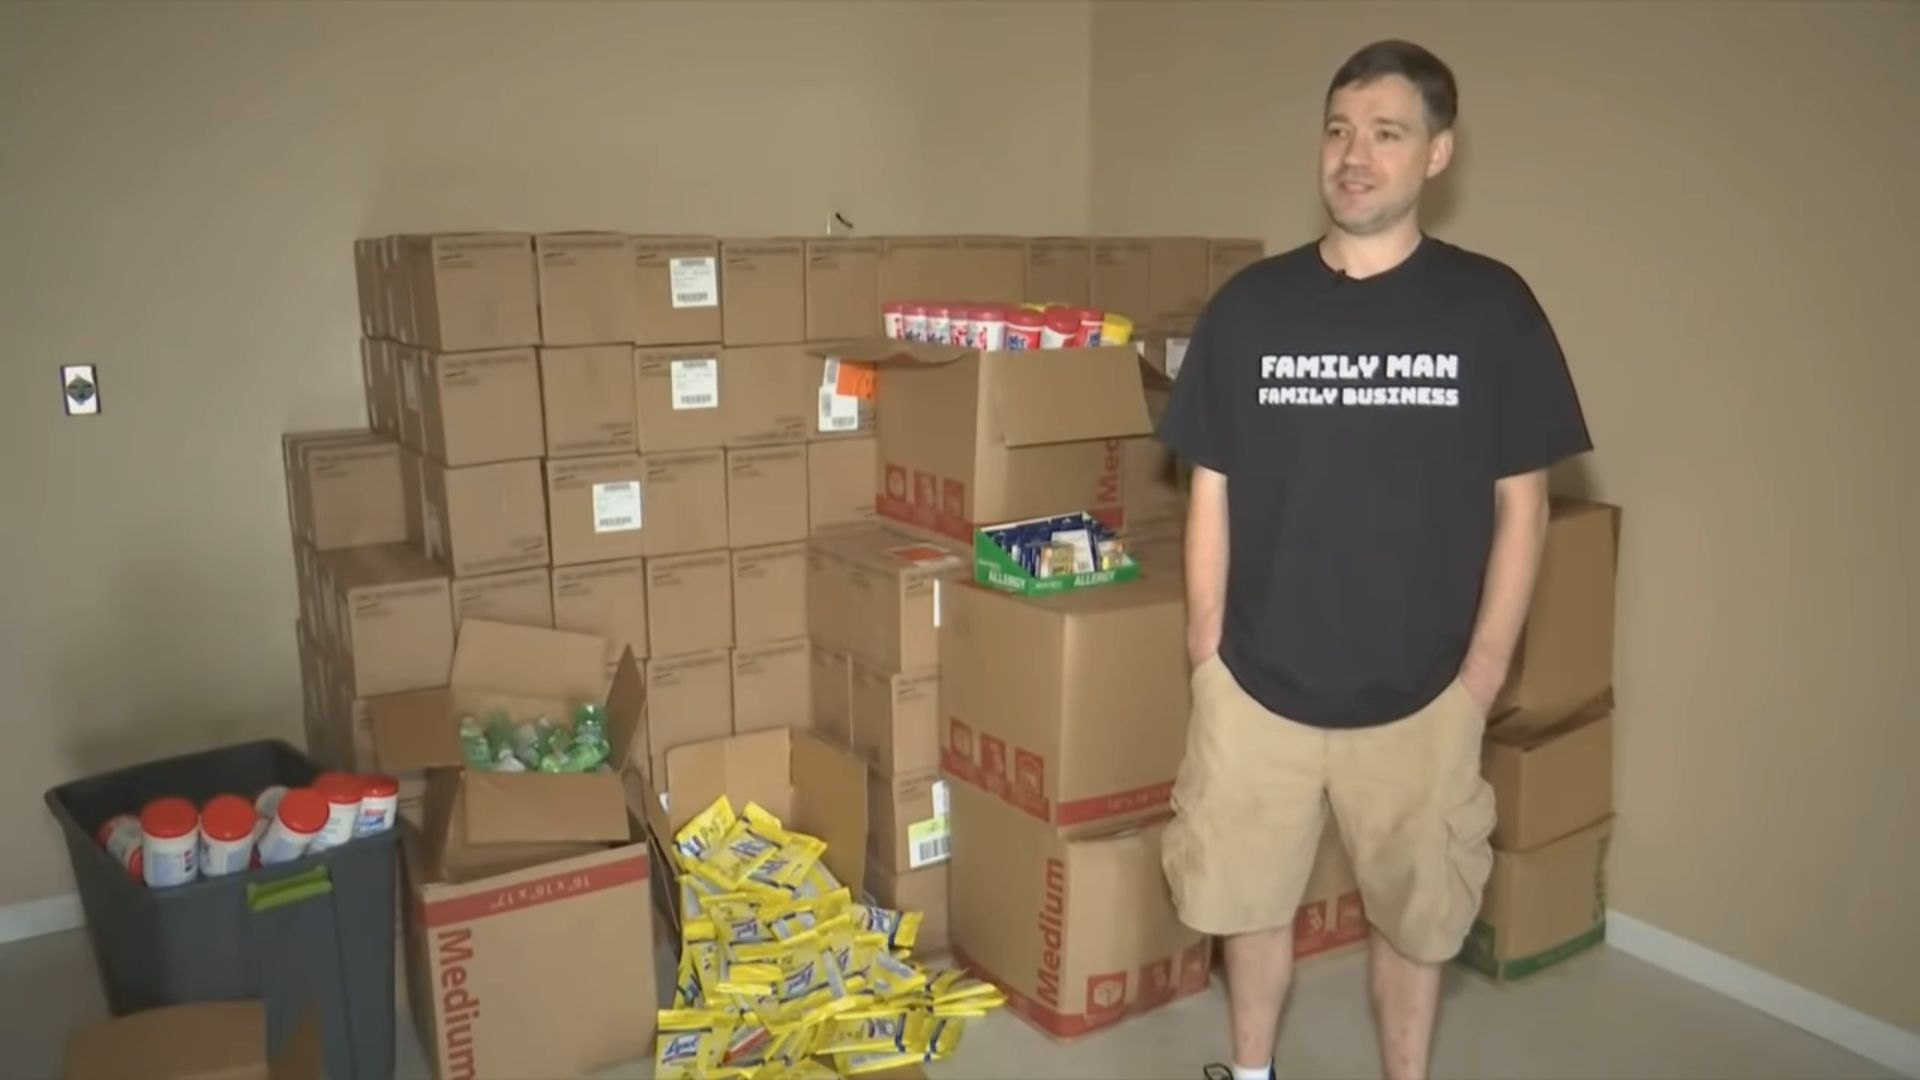 Matt Colvin stands with medical supplies that he said he purchased from stores in Tennessee and Kentucky to sell online for a